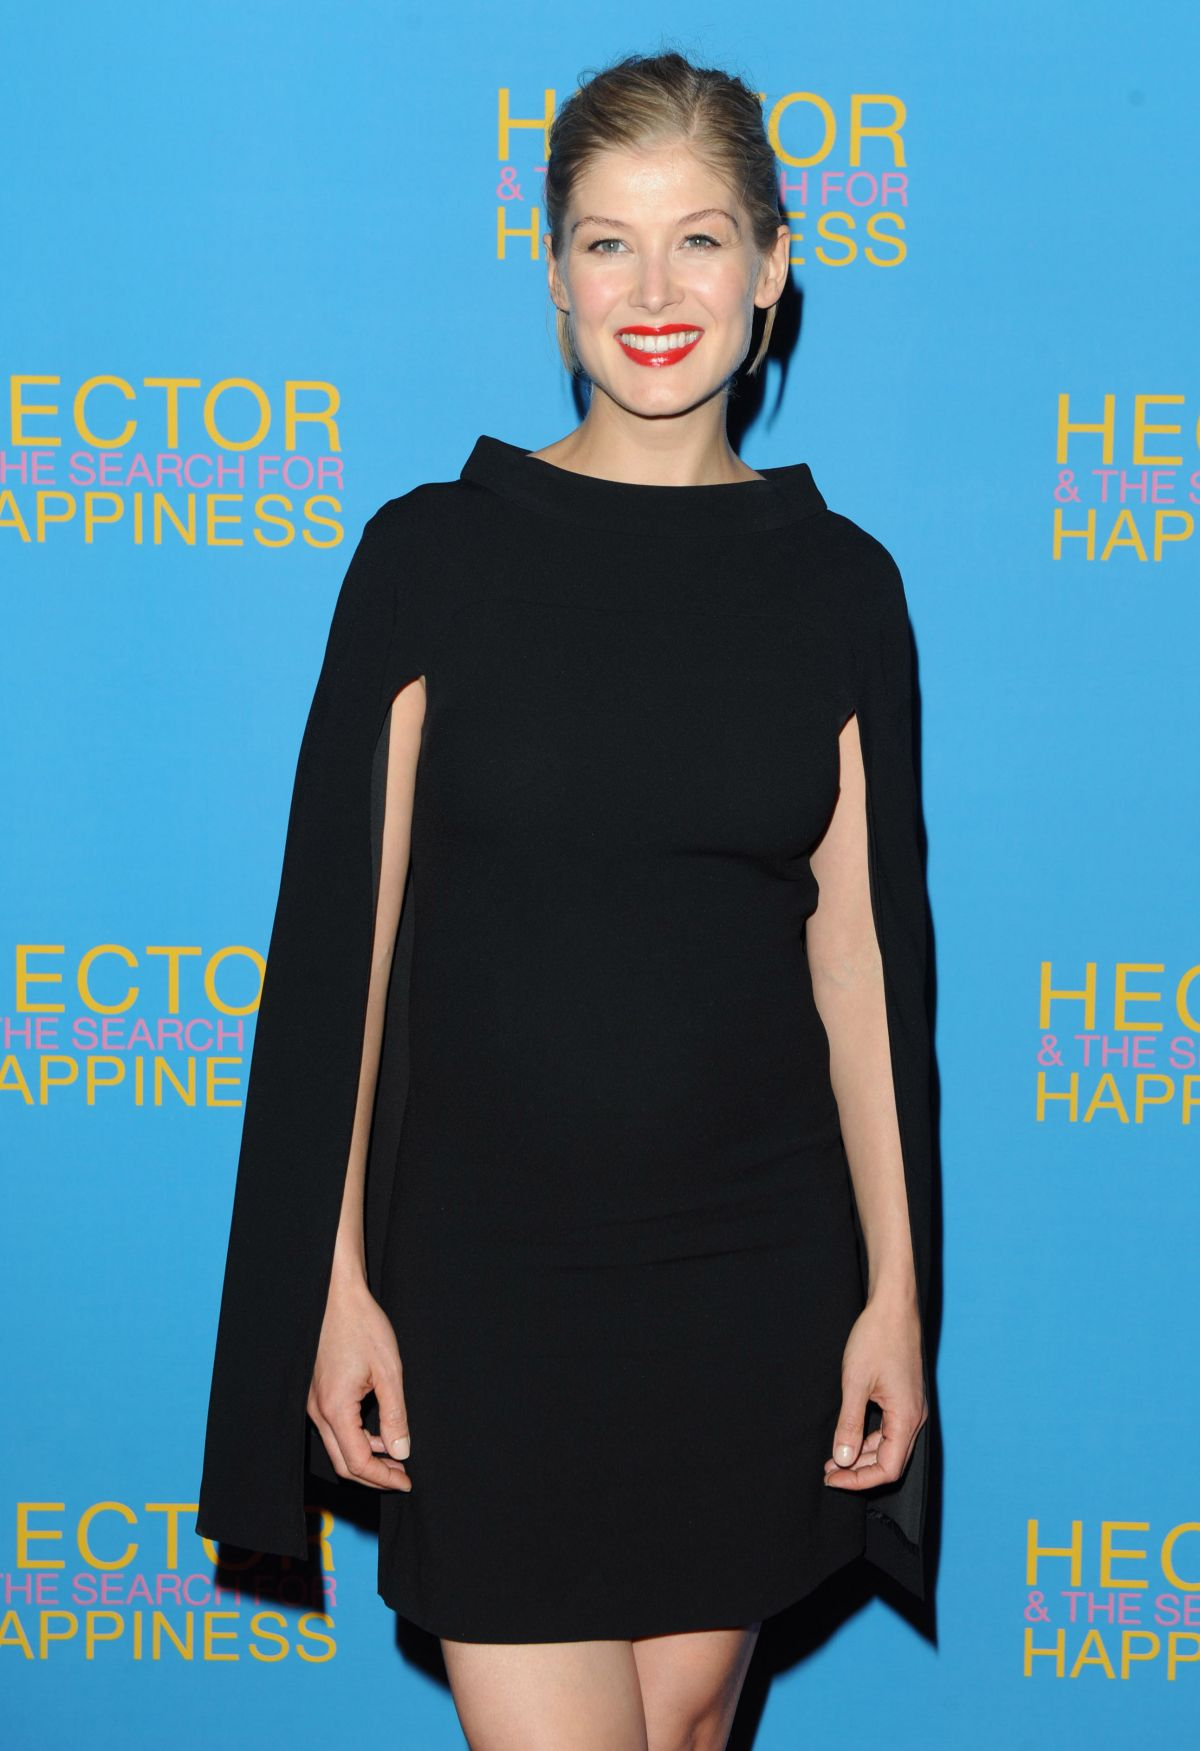 Rosamund Pike At Hector And The Search For Hapiness Premiere In London